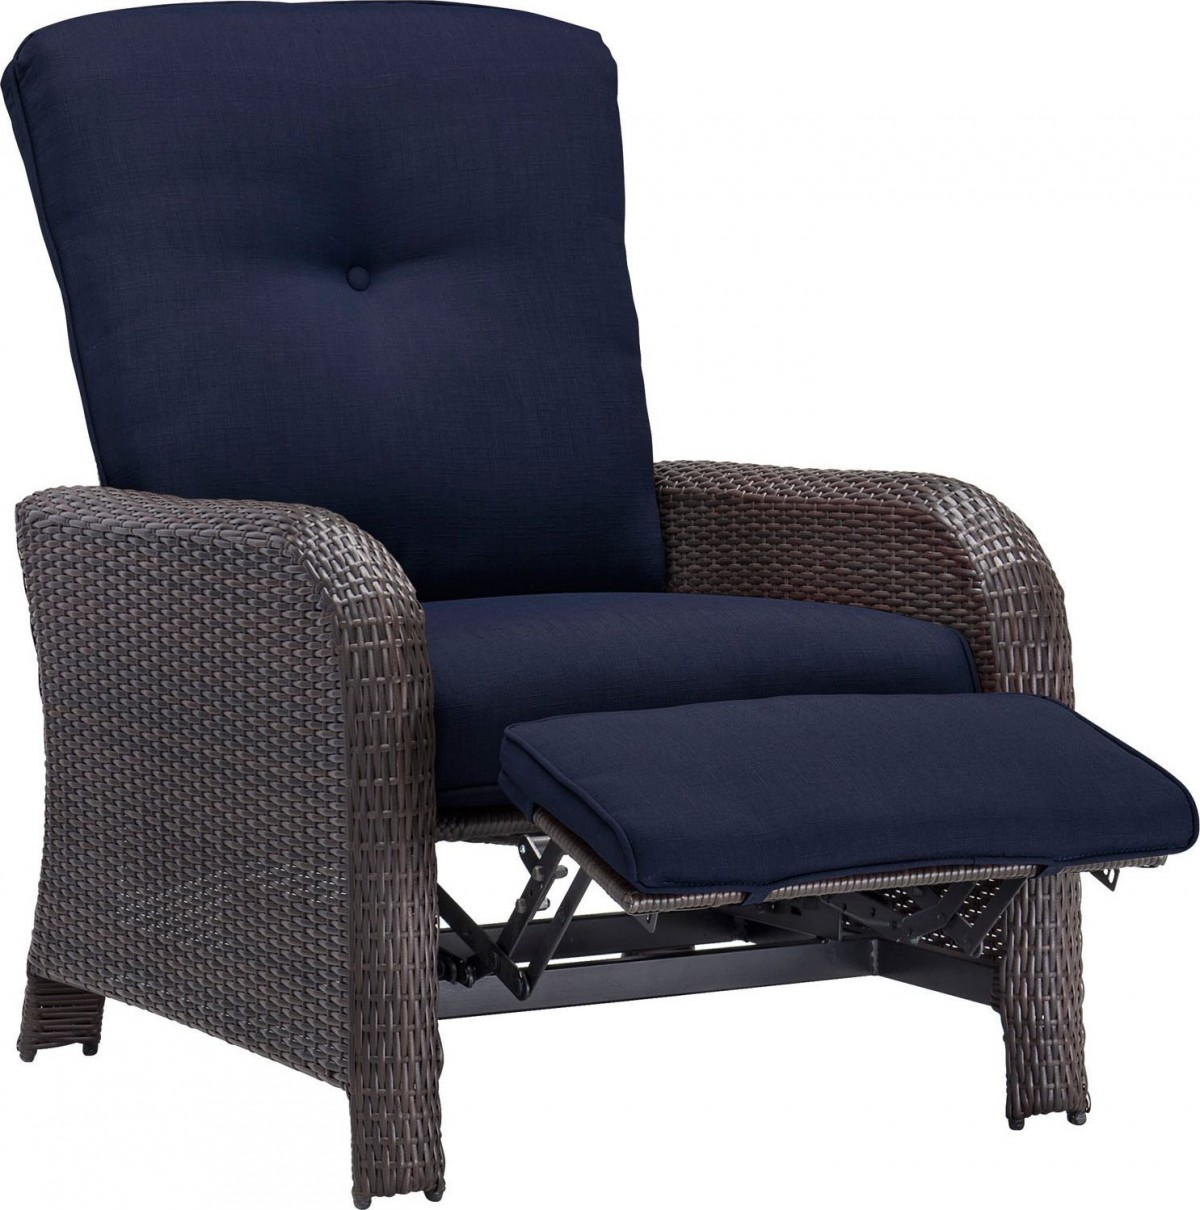 chair covers for recliners game table chairs with casters hanover strathmere luxury wicker outdoor recliner